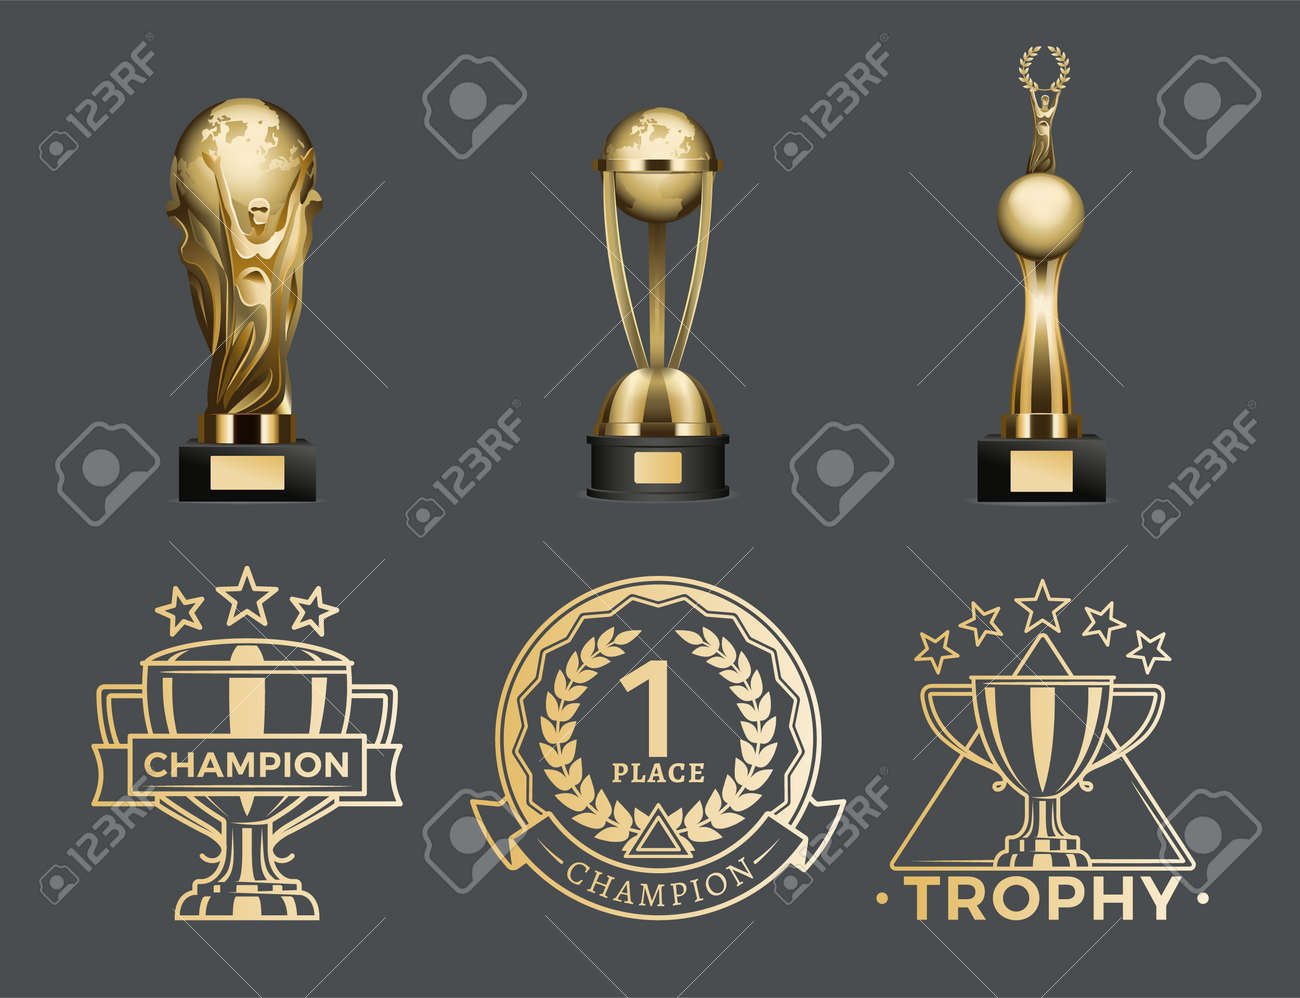 Gold Trophy Cups and Medals for 1st Place Set - 107597443